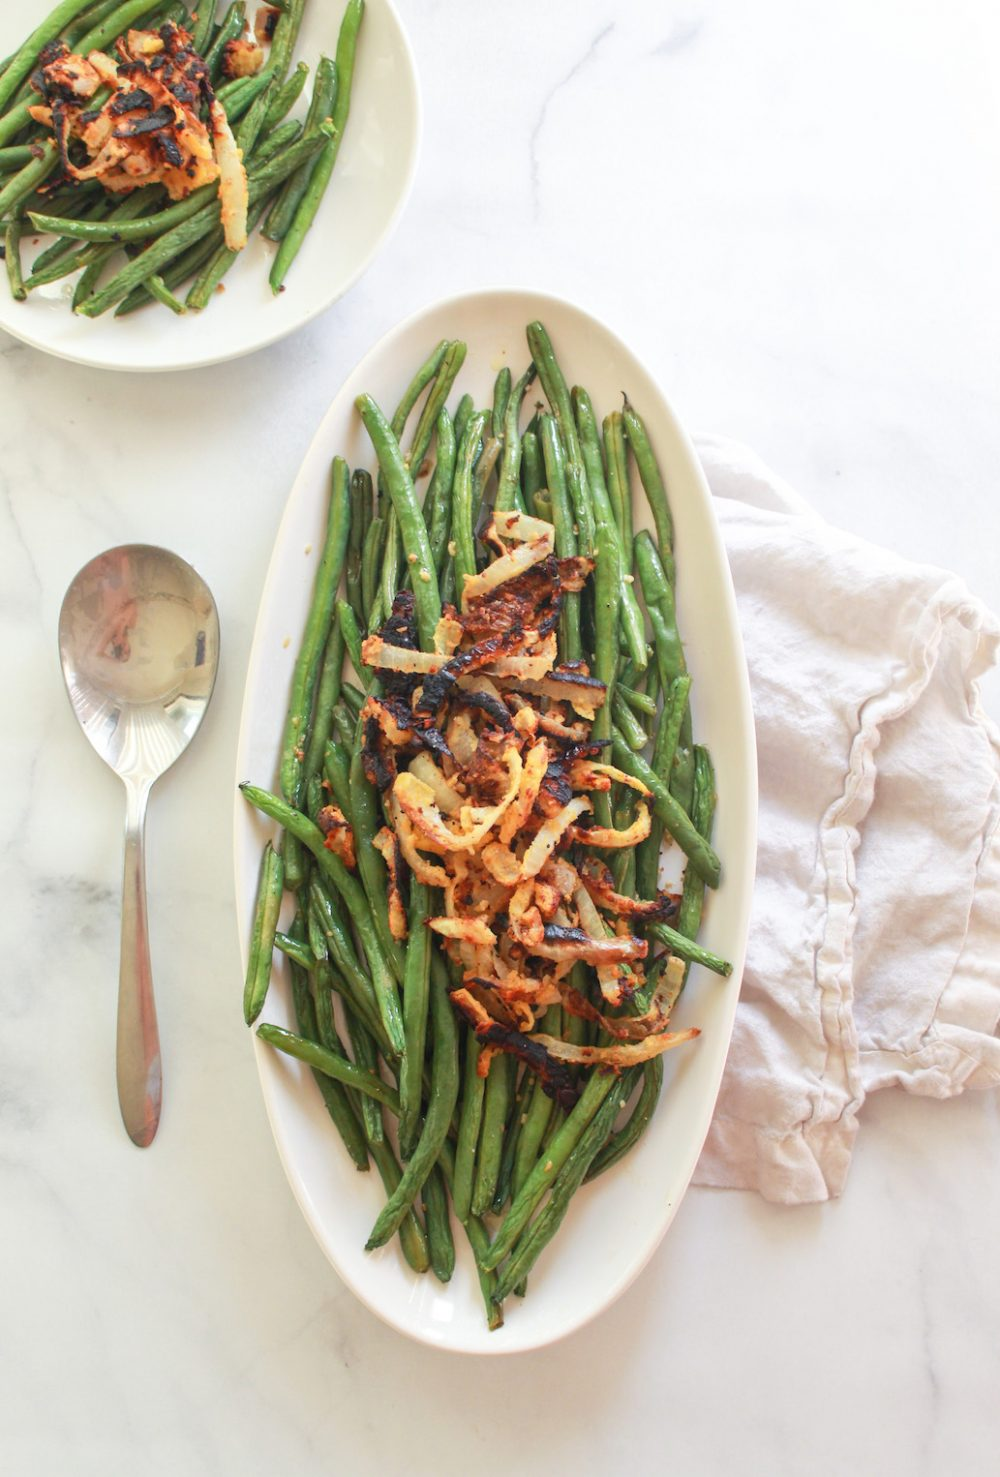 lemon garlic green beans with crispy chickpea fried onions roasted sheetpan vegan vegetarian side dish thanksgiving food blog recipe zenandzaatar